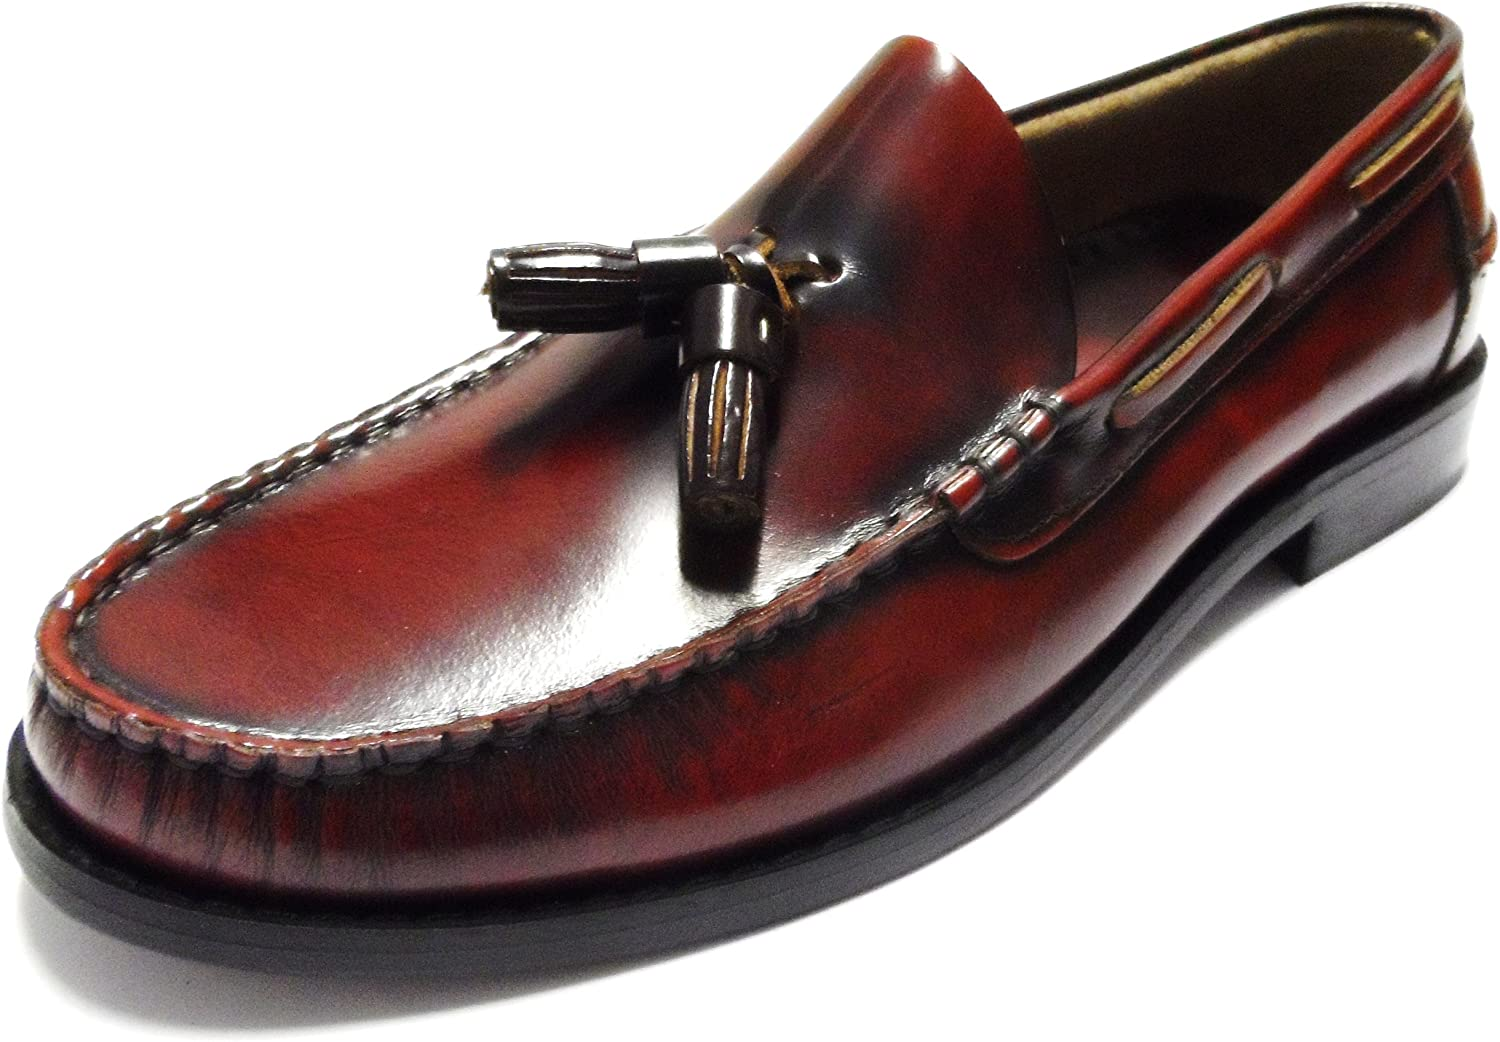 Delicious Junction Bordo Merton Loafers Sizes 7-11 Available